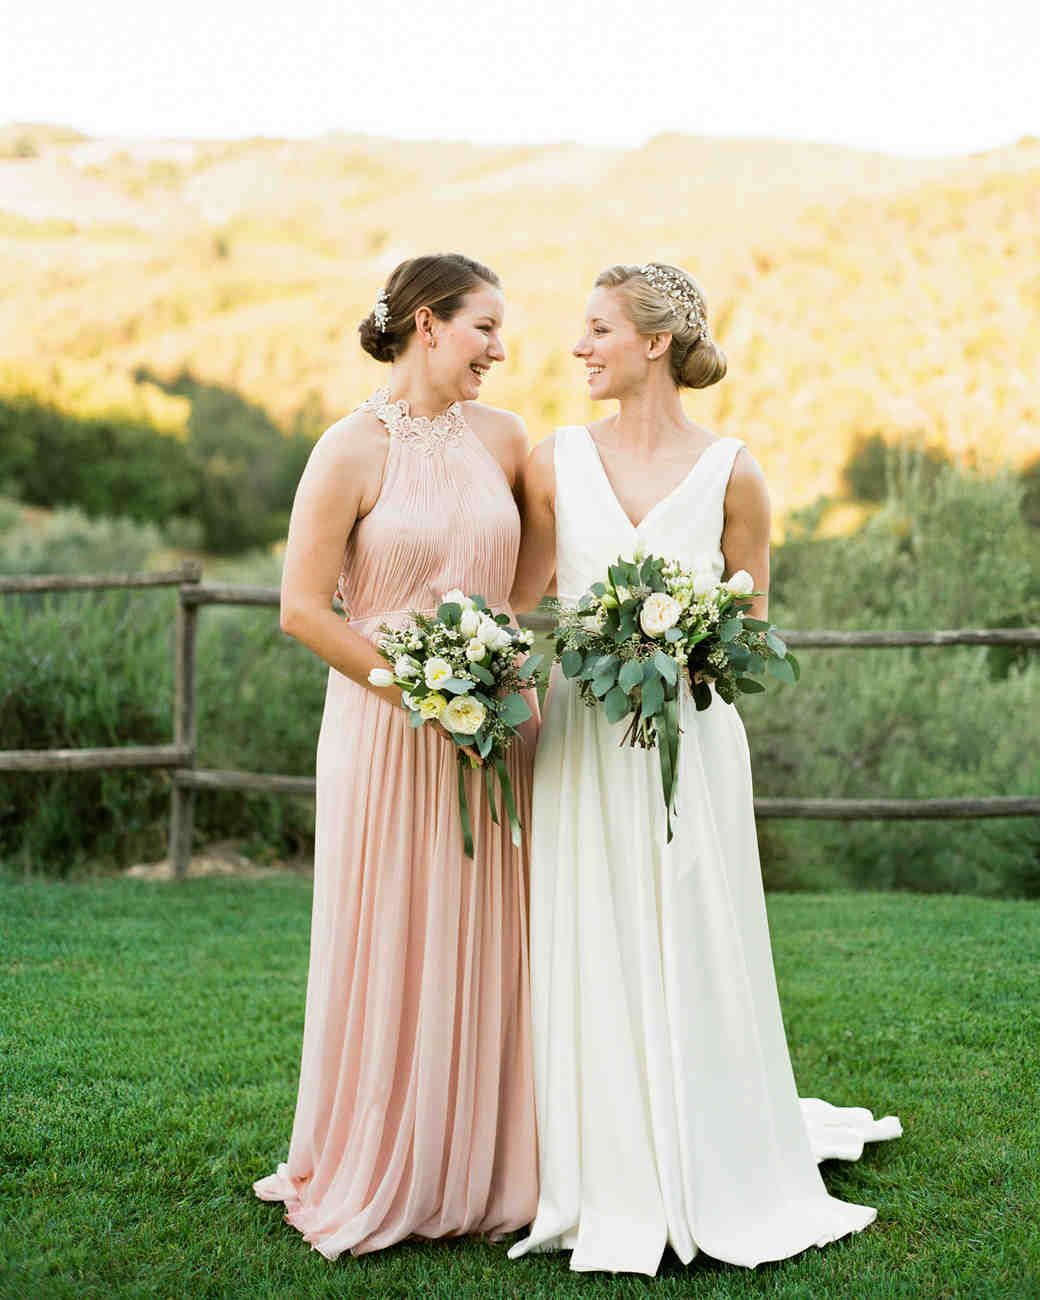 Special ways to help your maid of honor stand out martha stewart special ways to help your maid of honor stand out martha stewart weddings ombrellifo Images